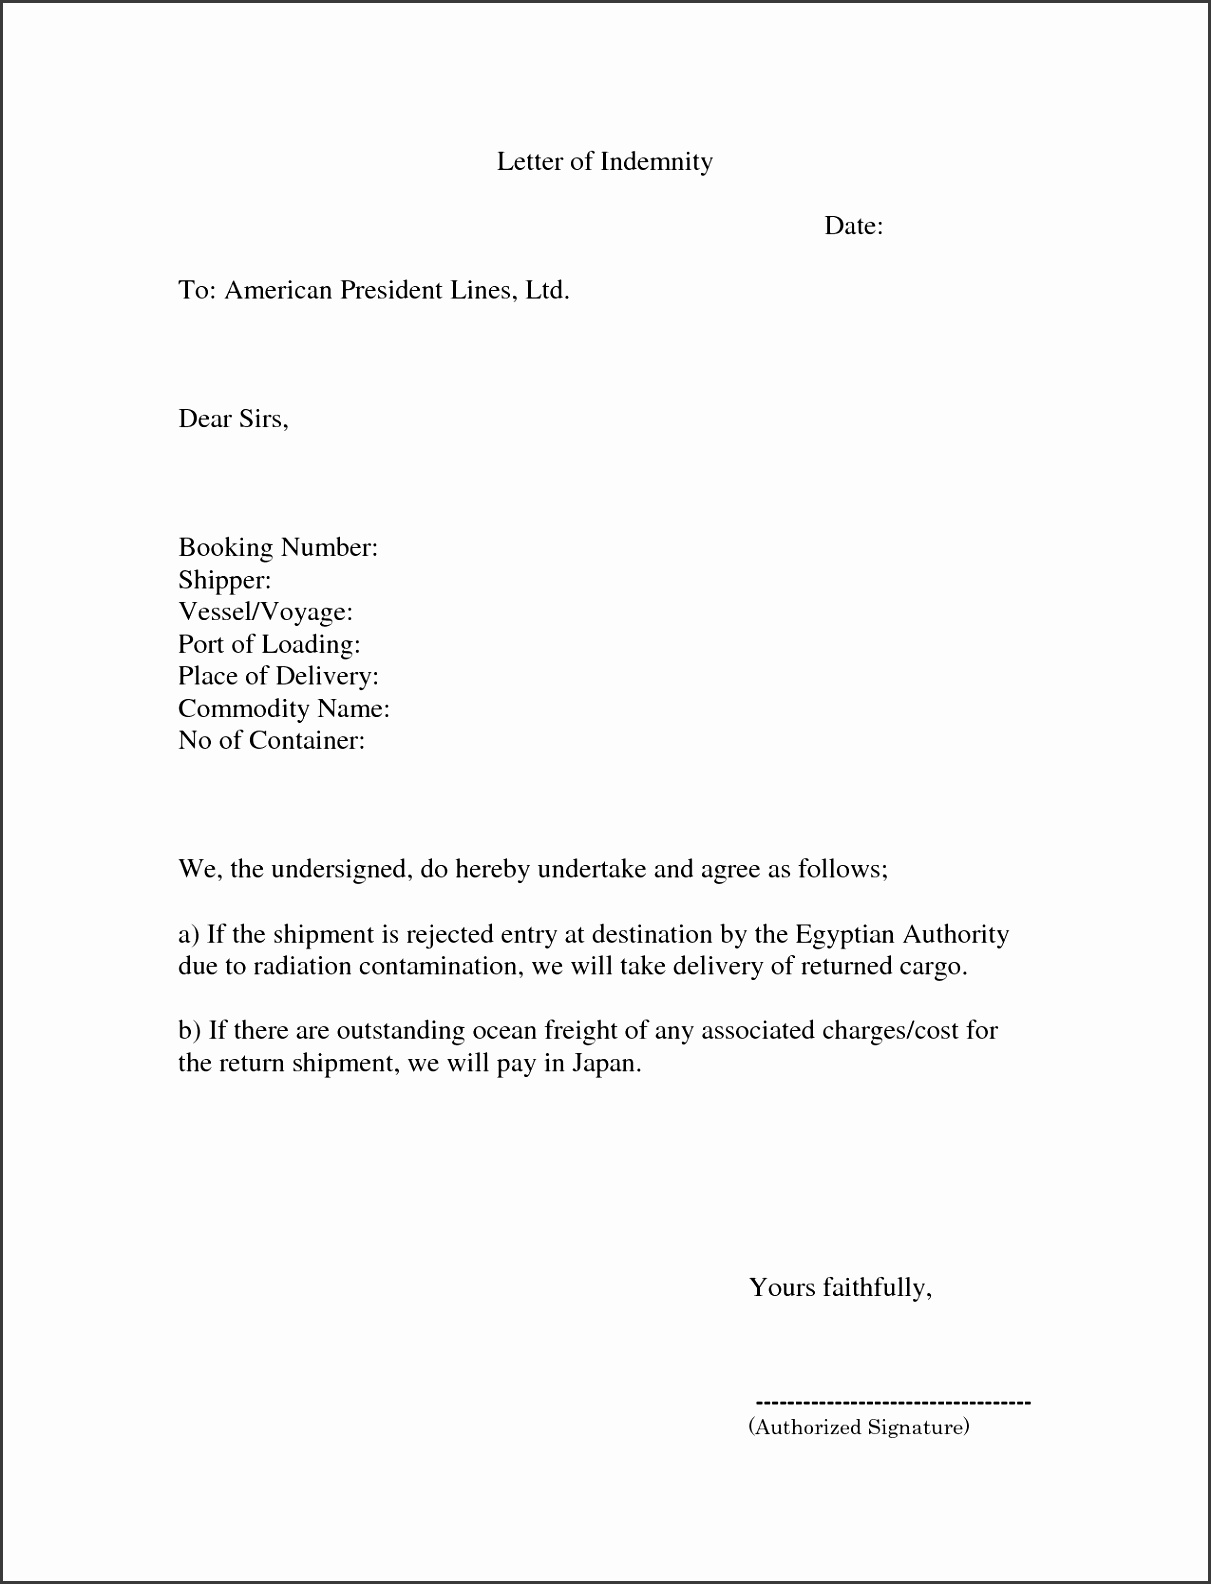 Letter of Indemnity Get as DOC by bl0QMP VCOLhEd1